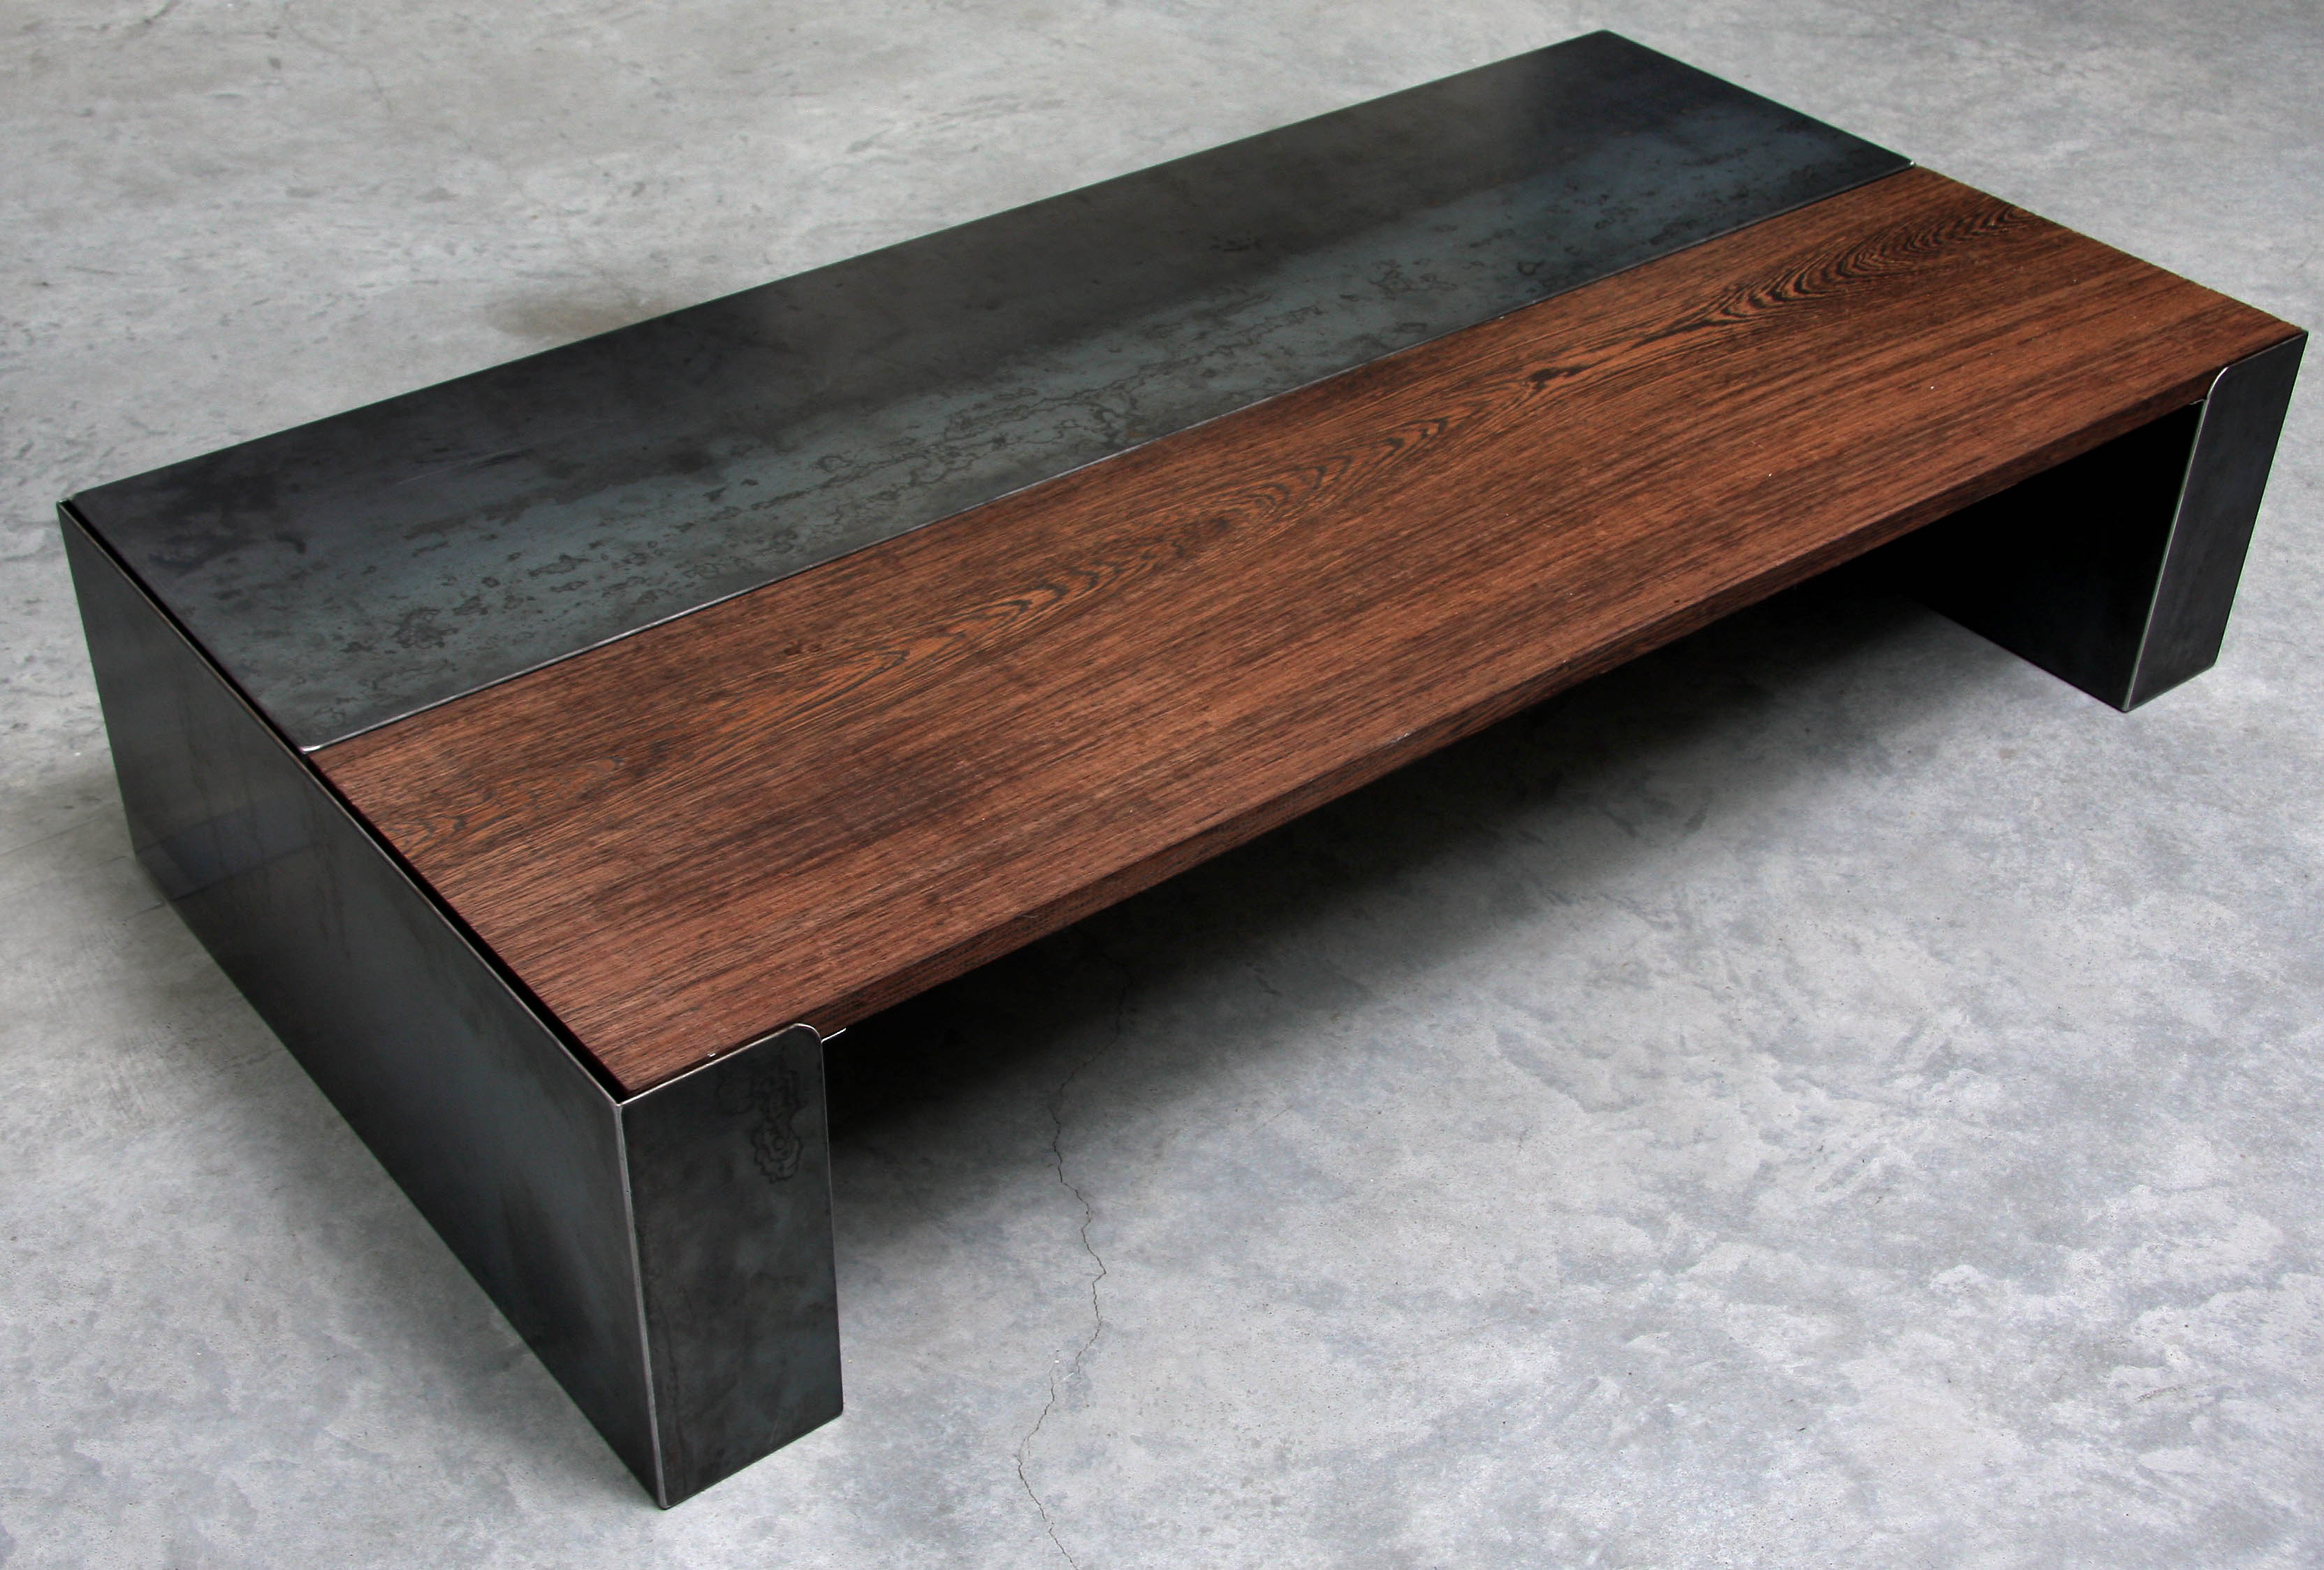 EcostArt Wenge And Steel Table - Stain steel table